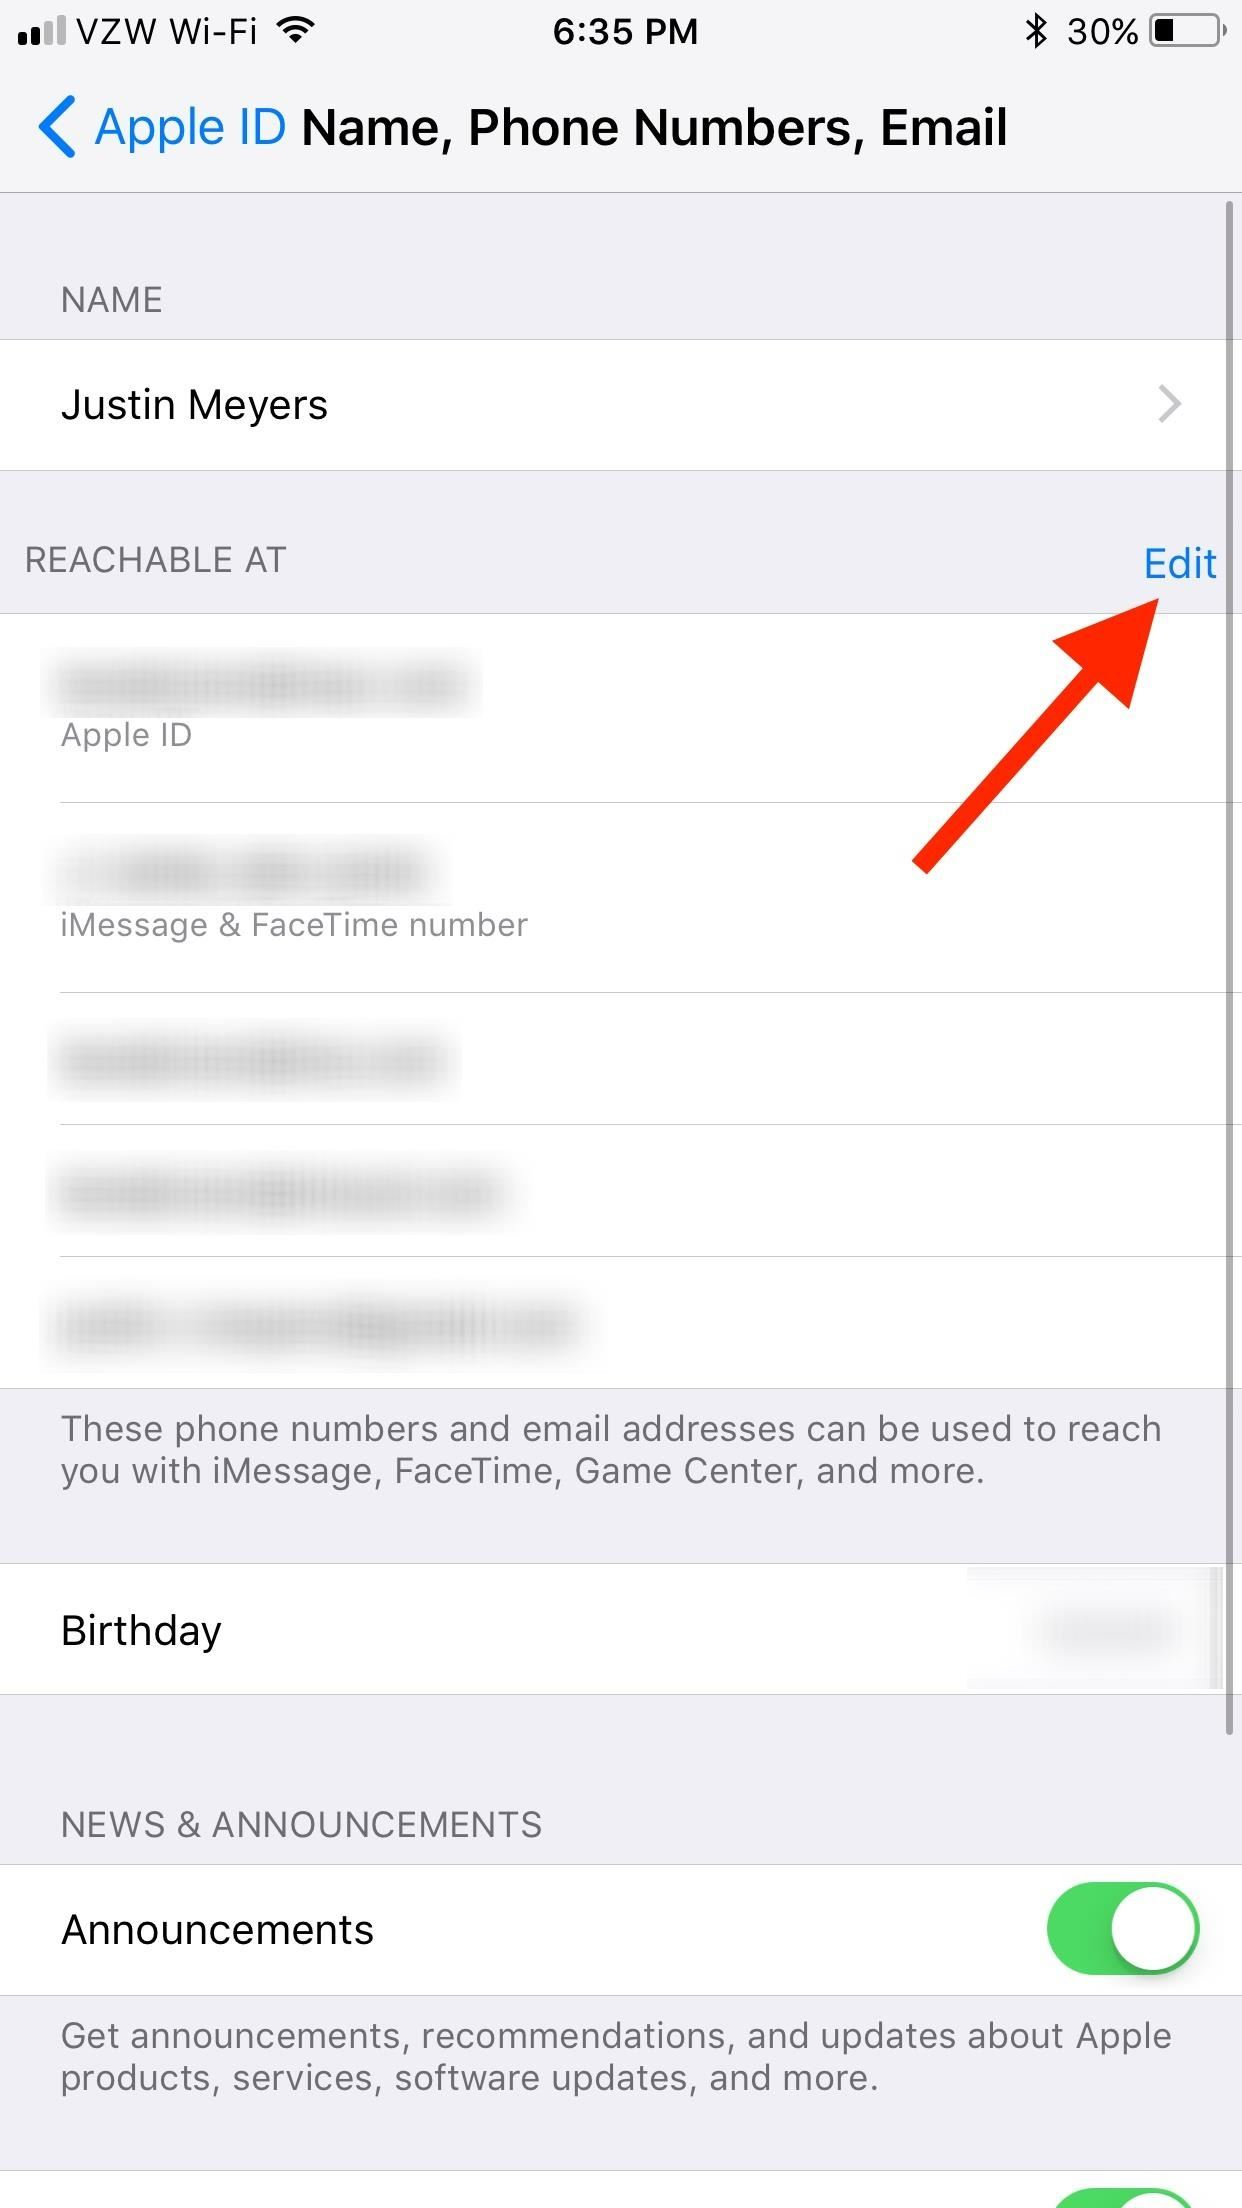 How to Add or Remove Email Addresses to Be Reached At for FaceTime on Your iPhone